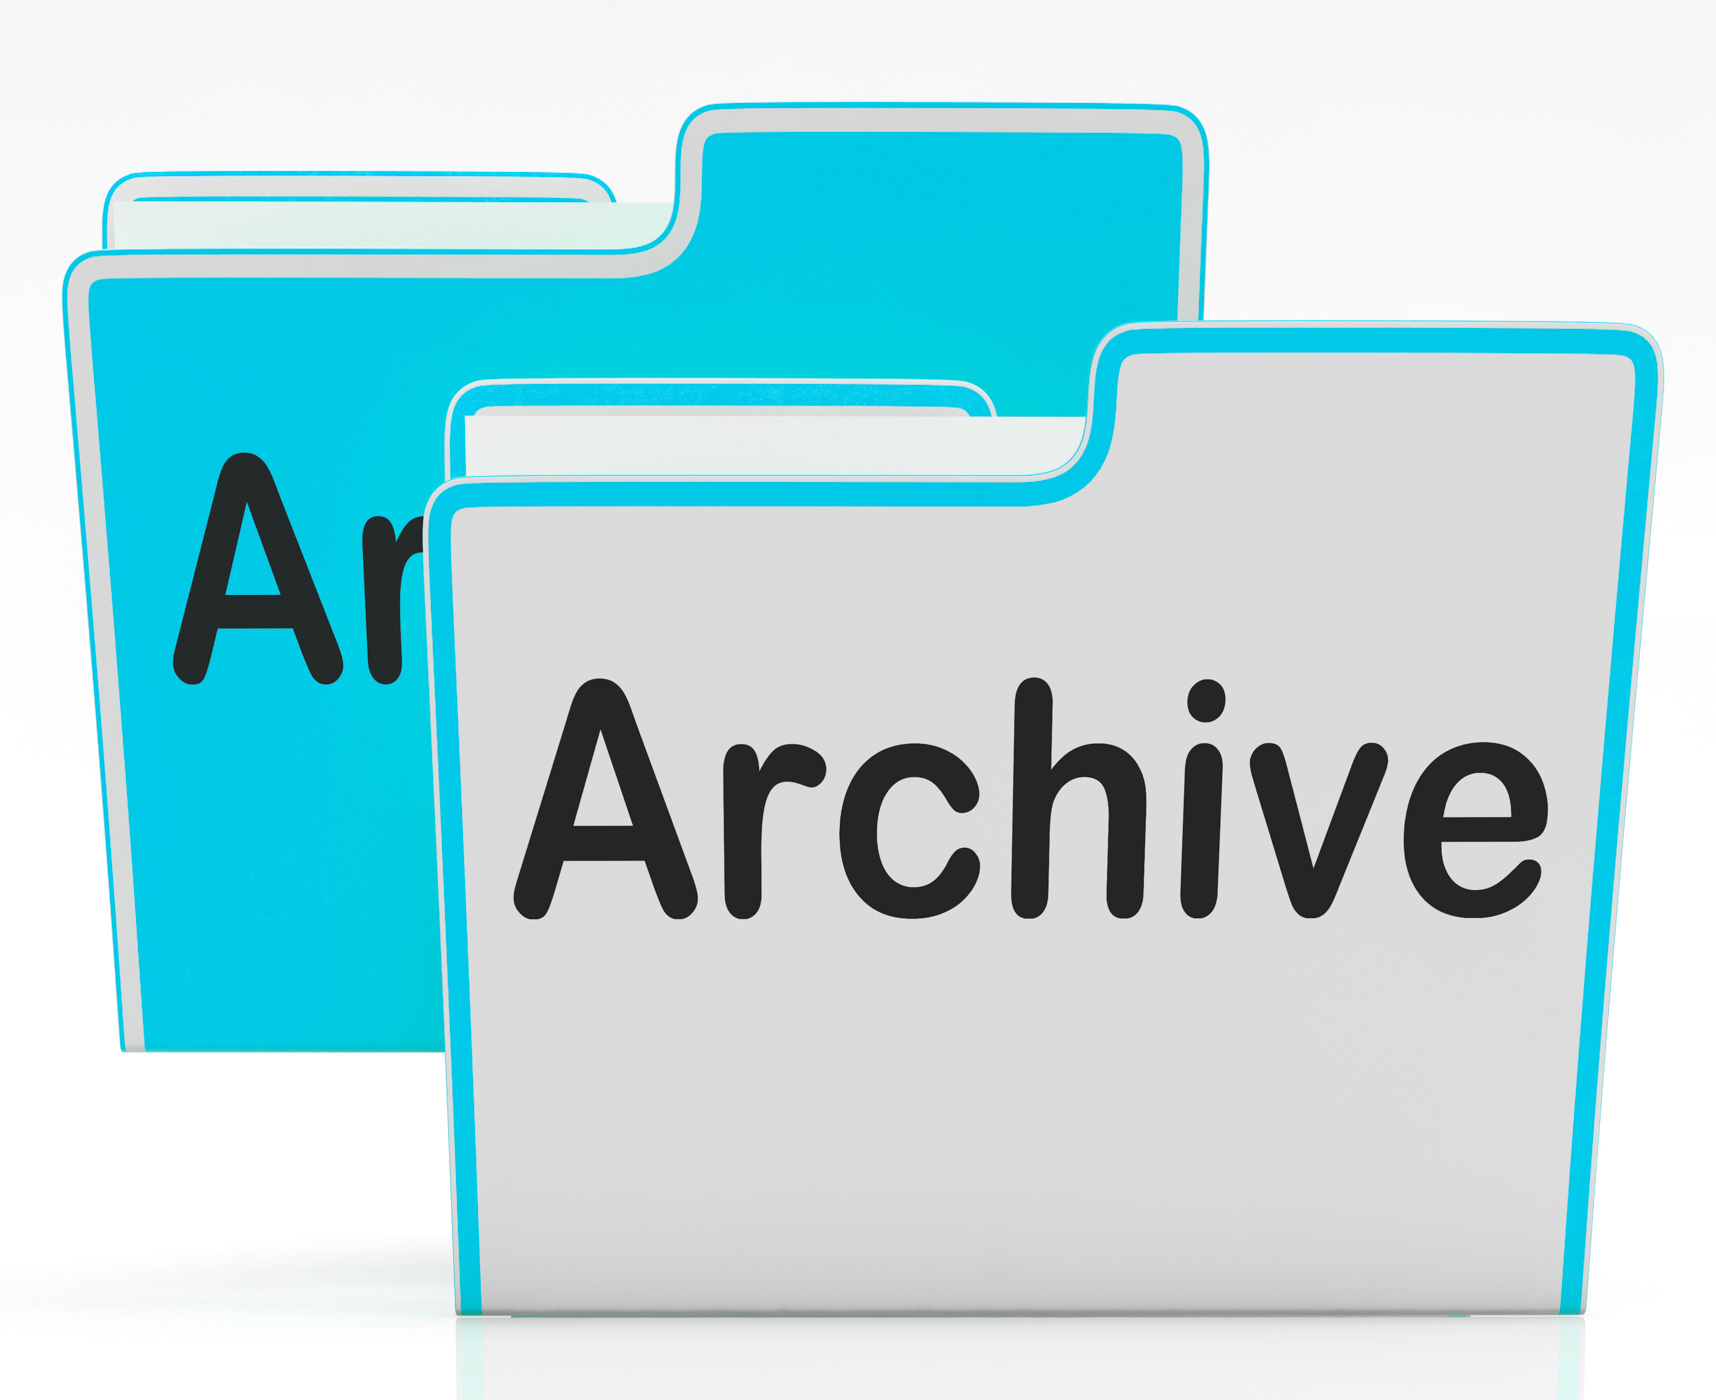 Files archive shows library storage and archives photo